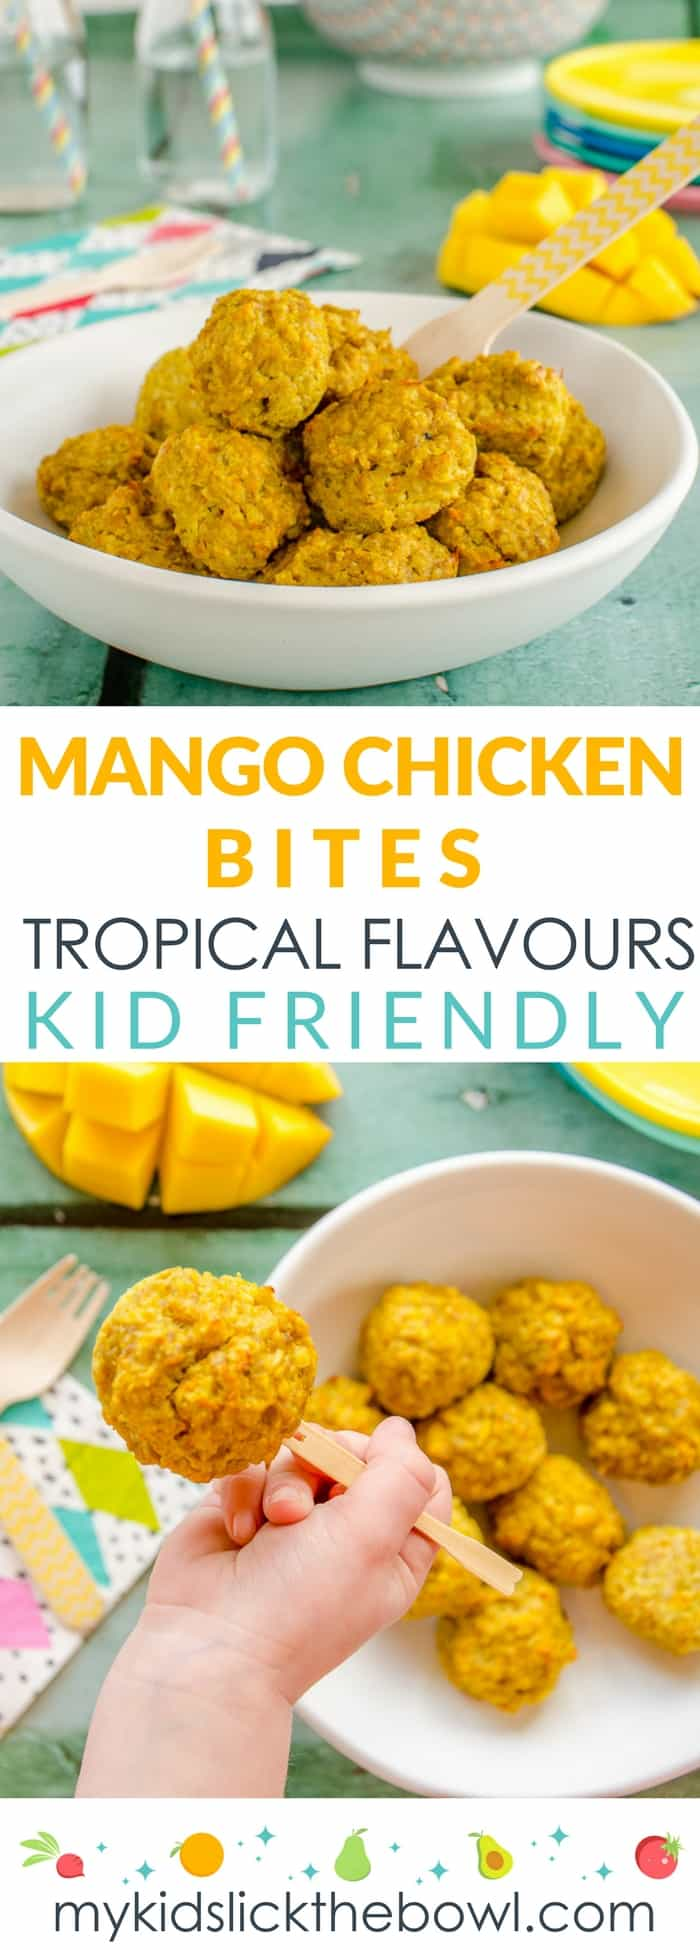 Mango Chicken Bites a Baked Chicken Meatball that is golden and fruity Kid Friendly Recipe